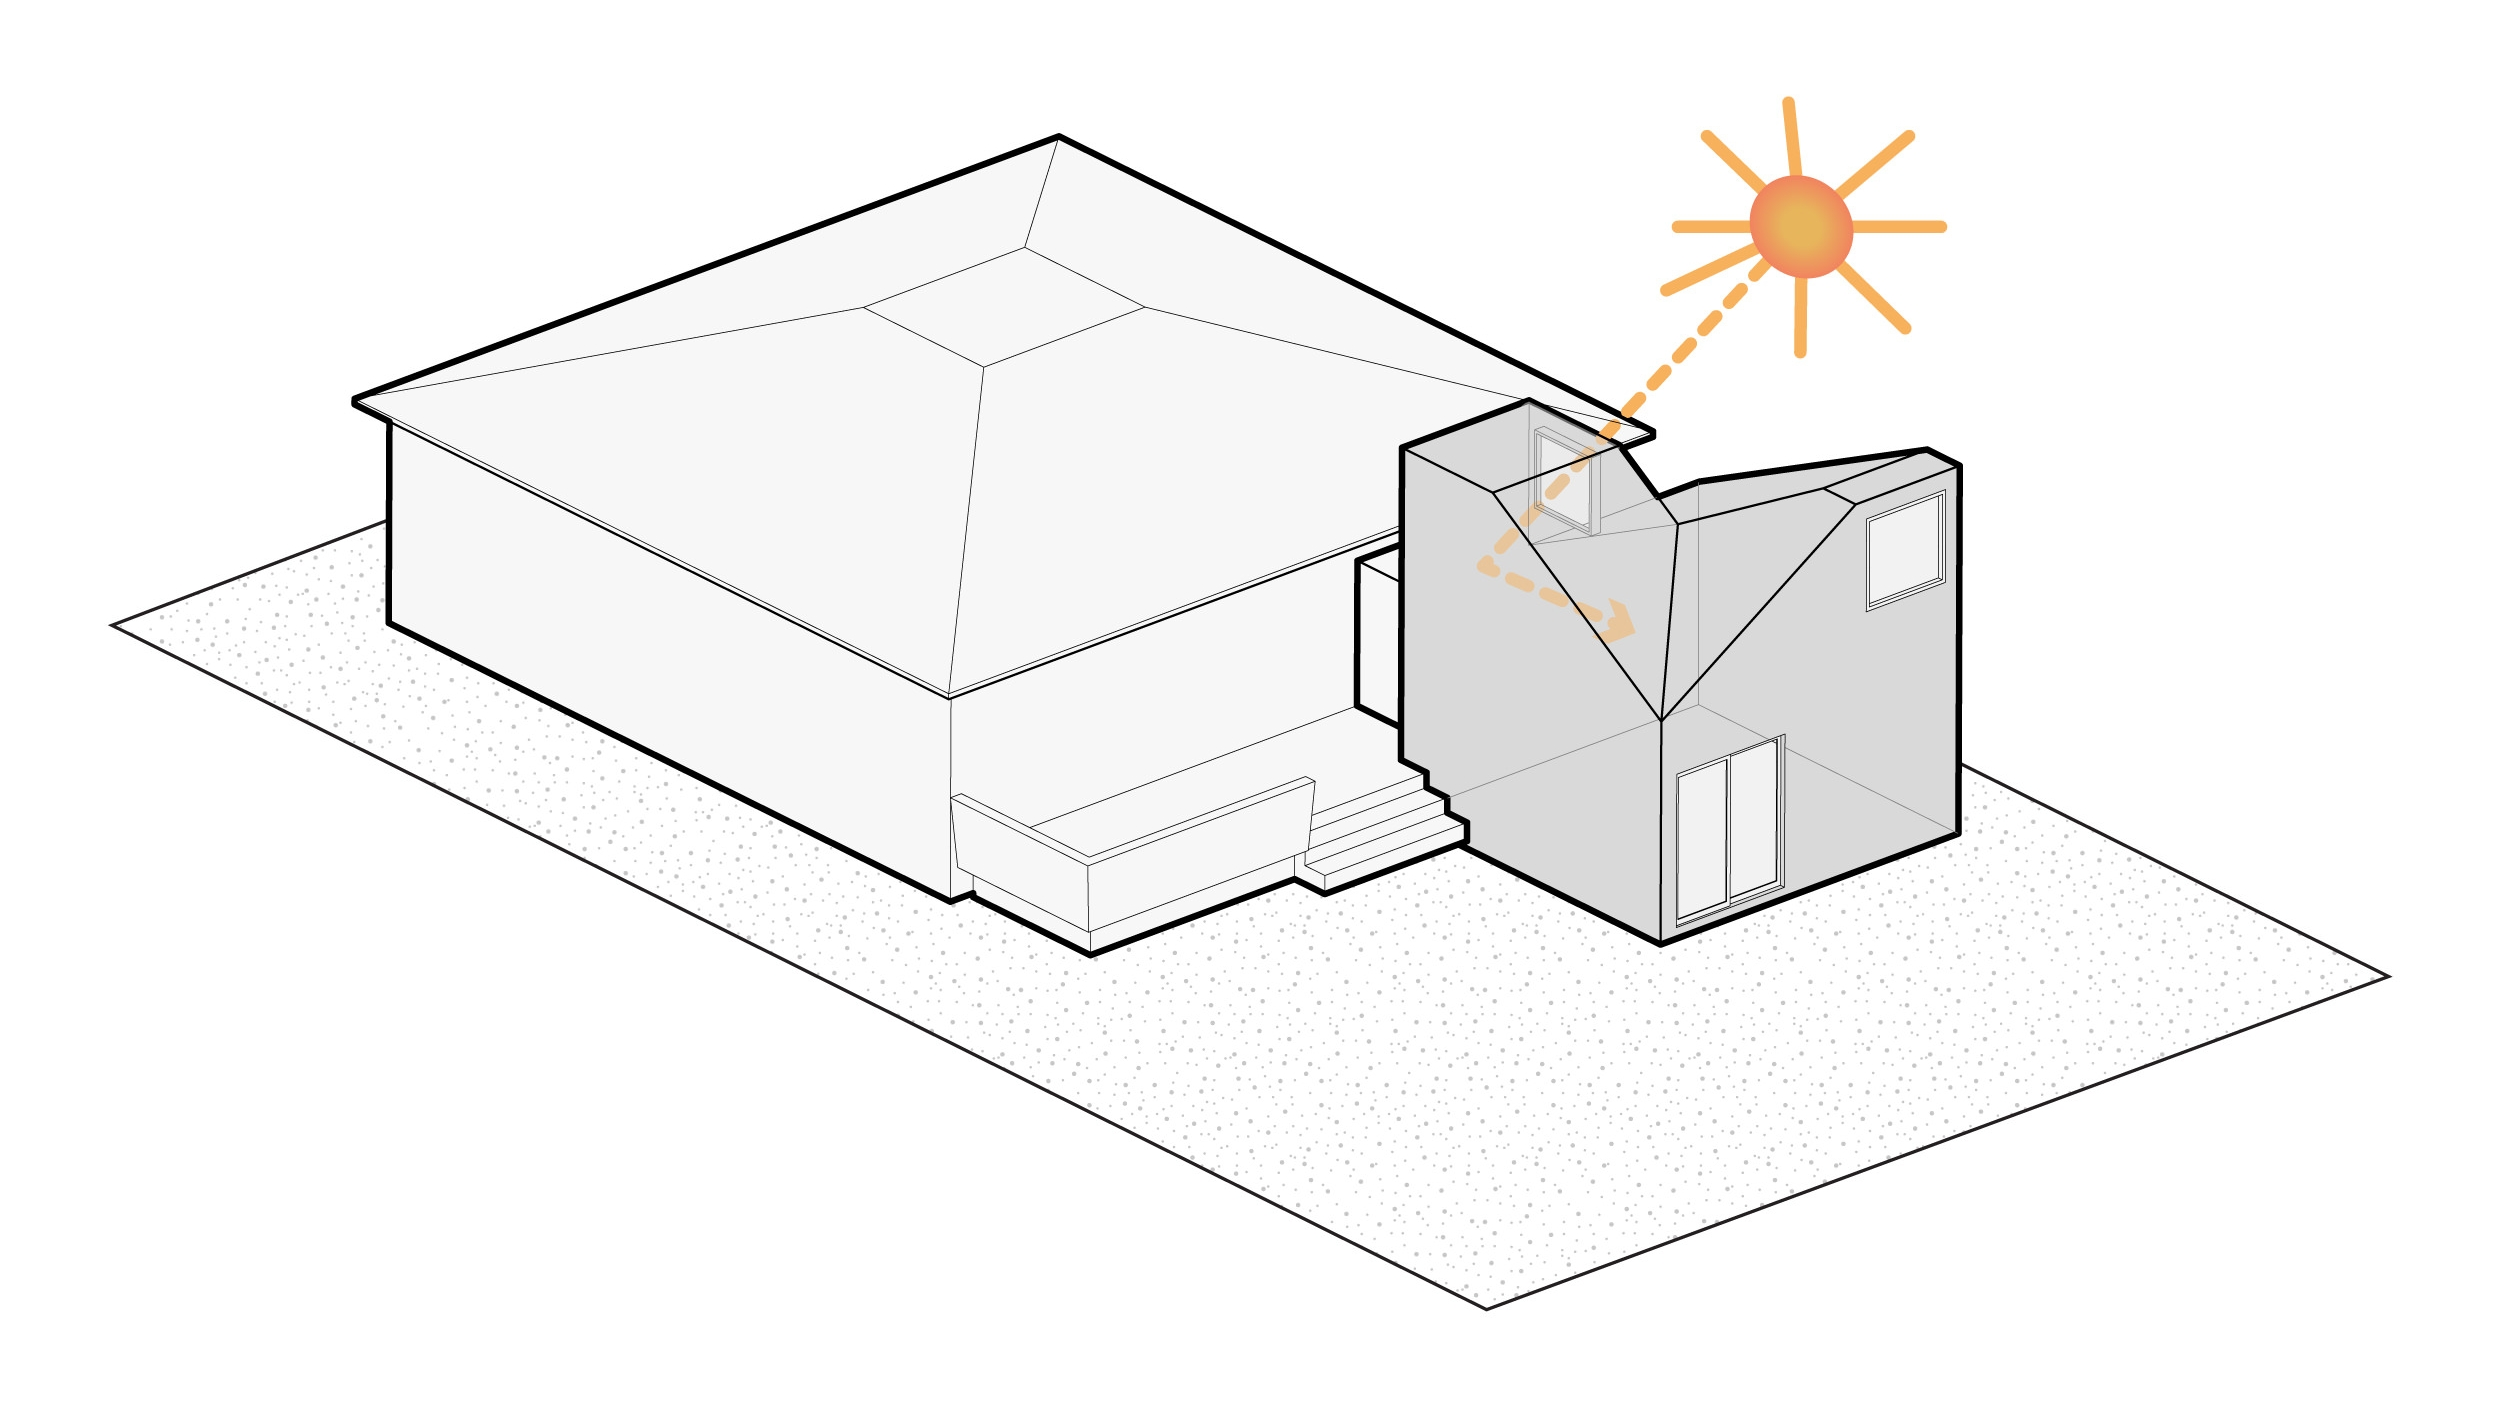 Step 3: A second west facing lightwell catches evening light and bounces it into the room.